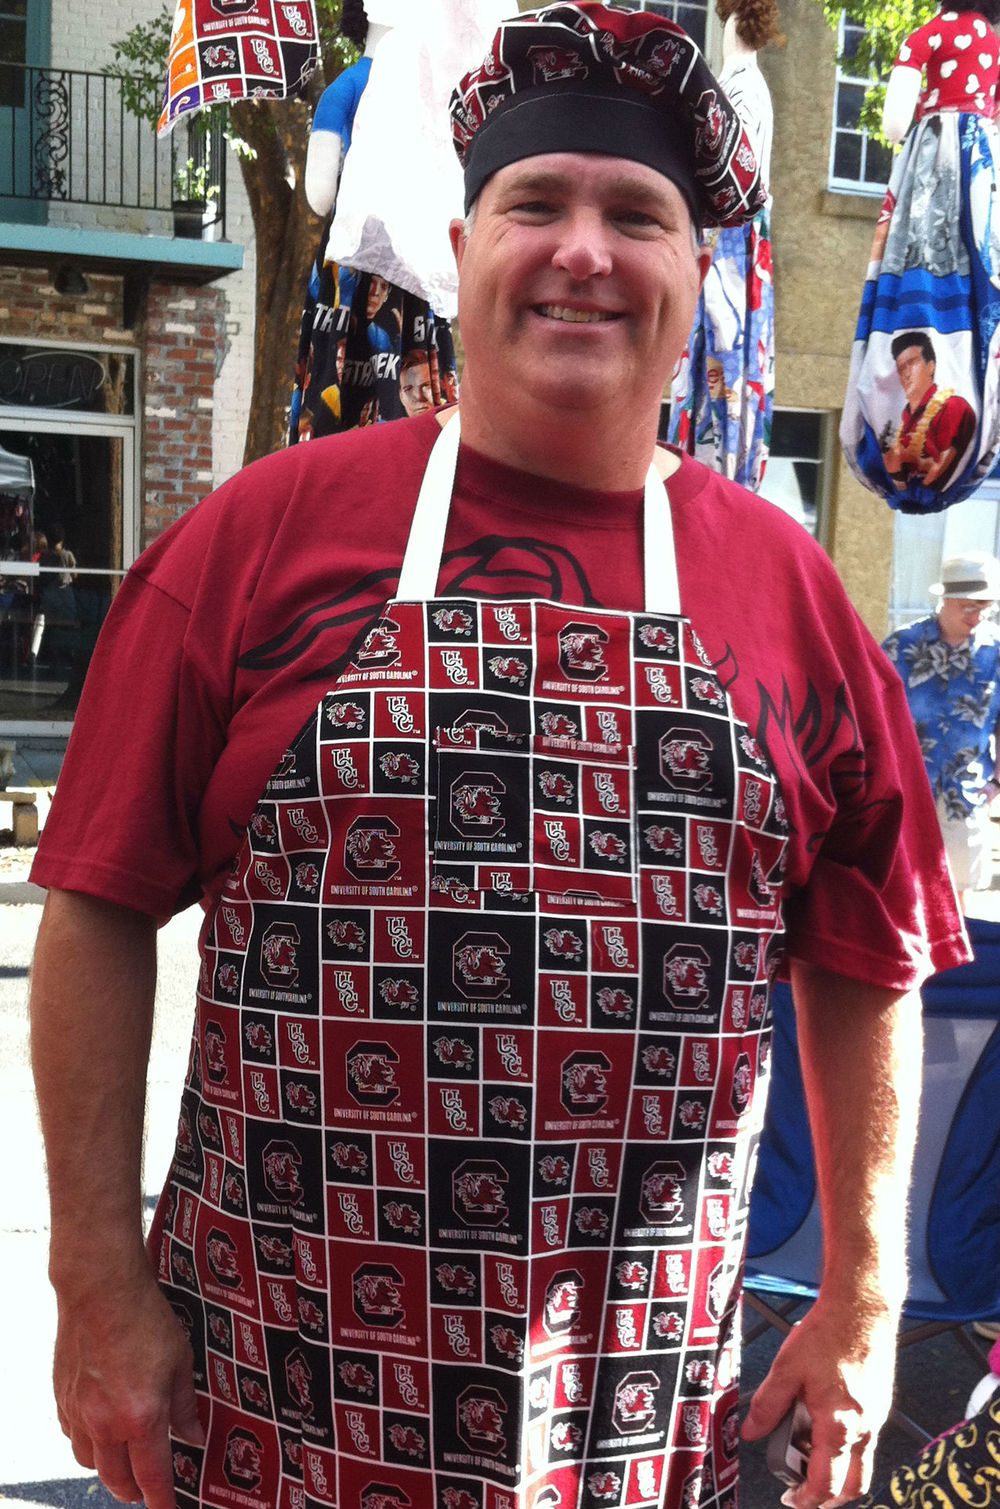 gamecocks apron.jpg